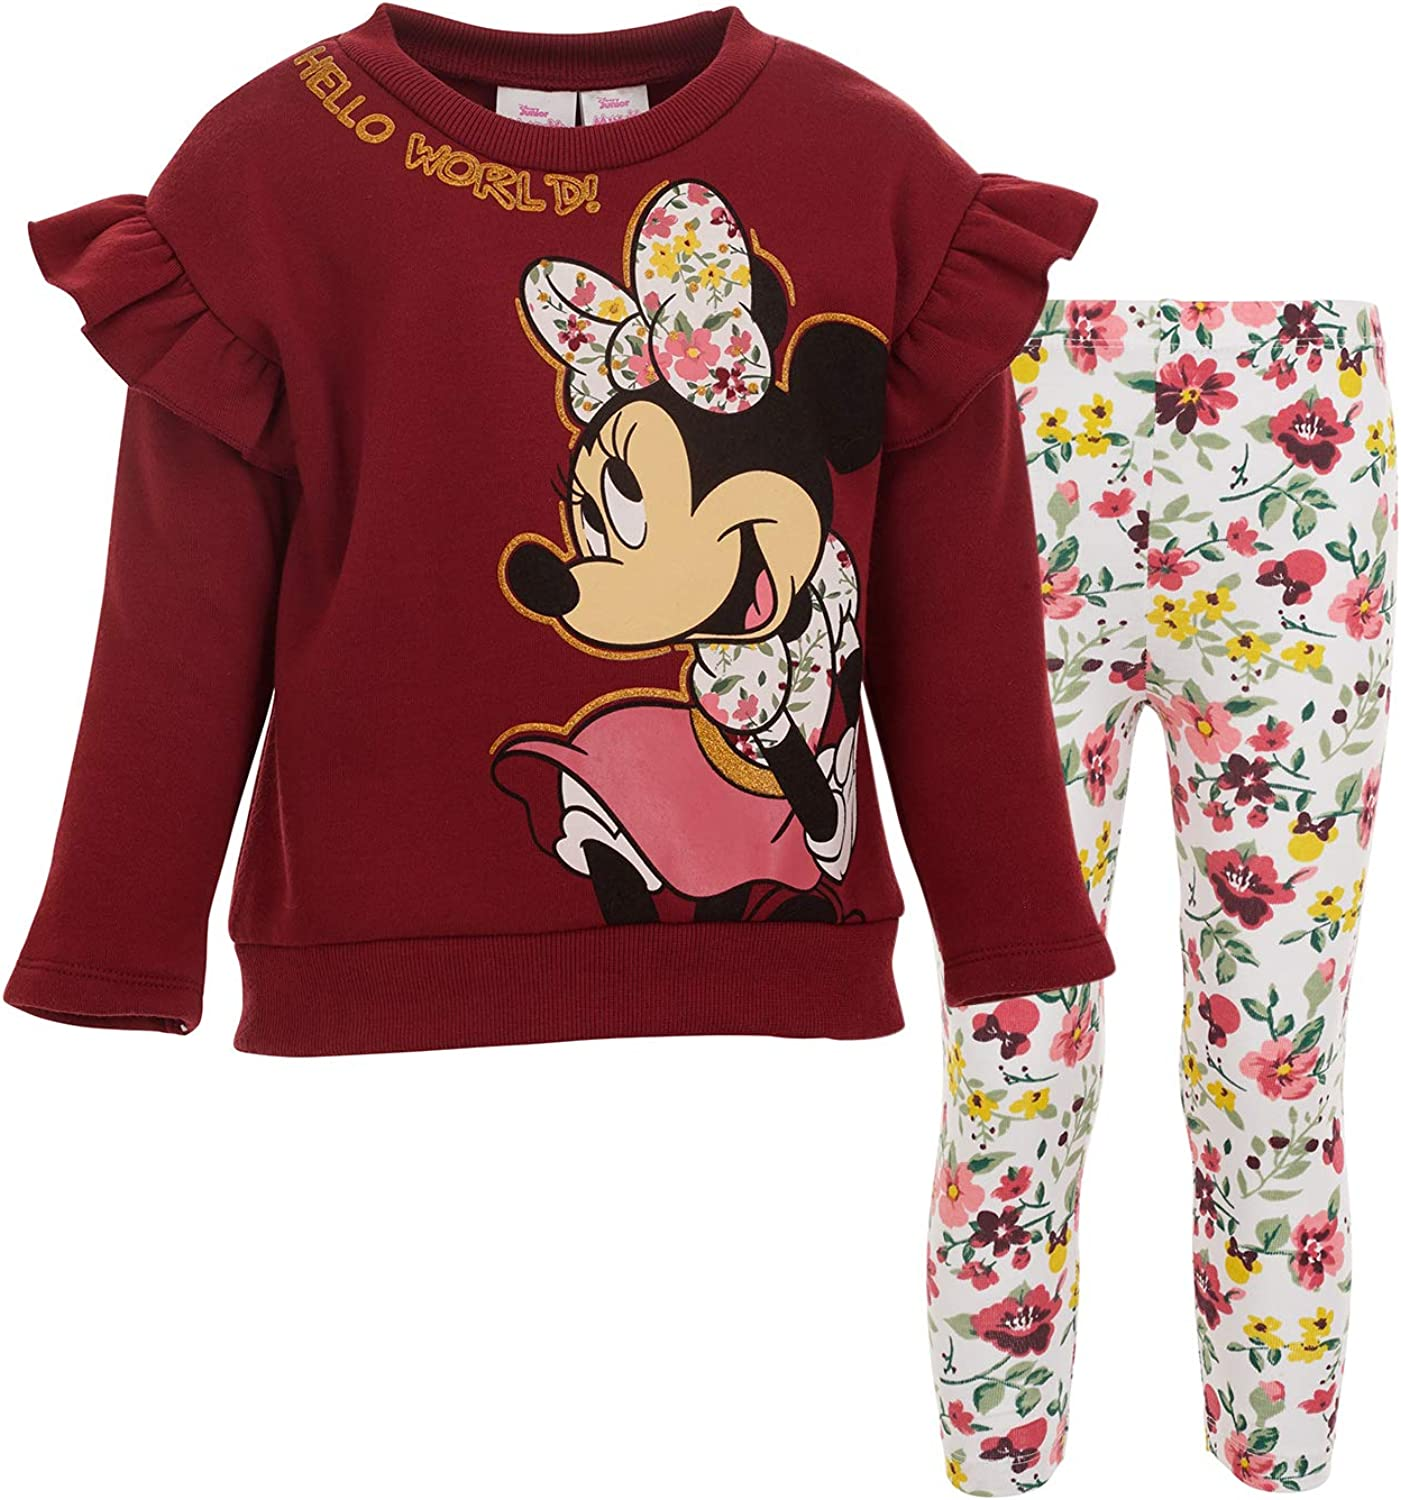 Disney Minnie Mouse Fleece Pullover Sweatshirt and Leggings Set: Clothing, Shoes & Jewelry